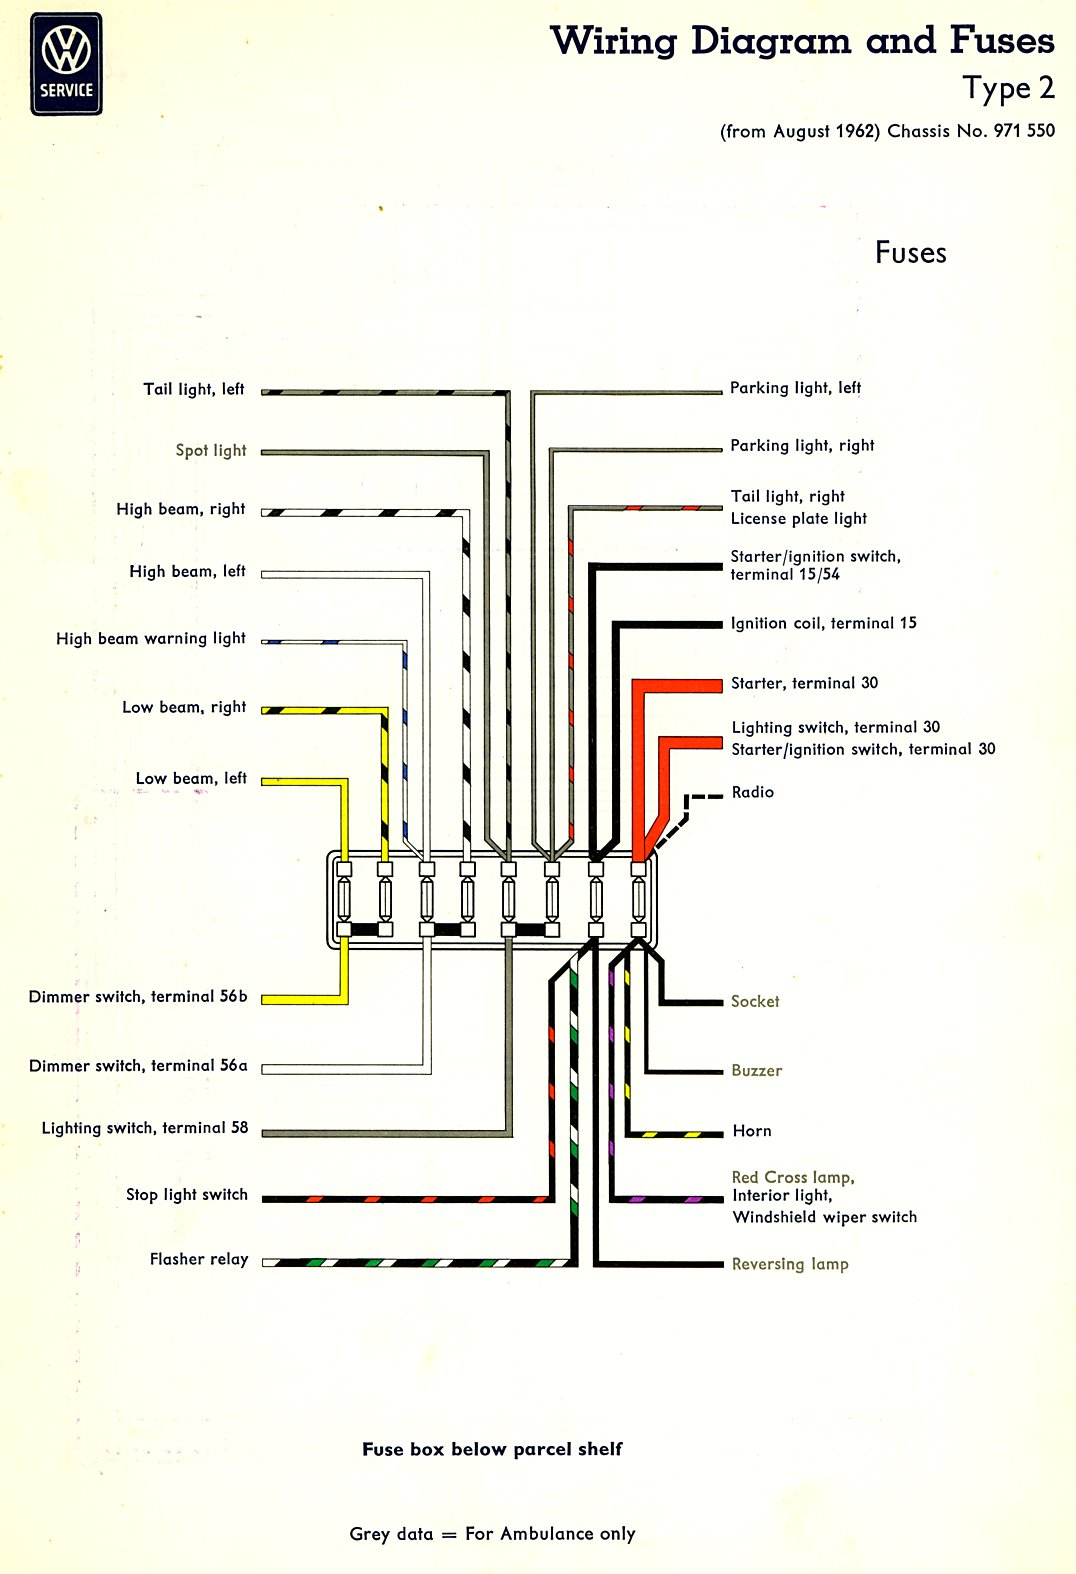 bus_63_fuses thesamba com type 2 wiring diagrams VW Jetta Wiring Diagram at gsmx.co